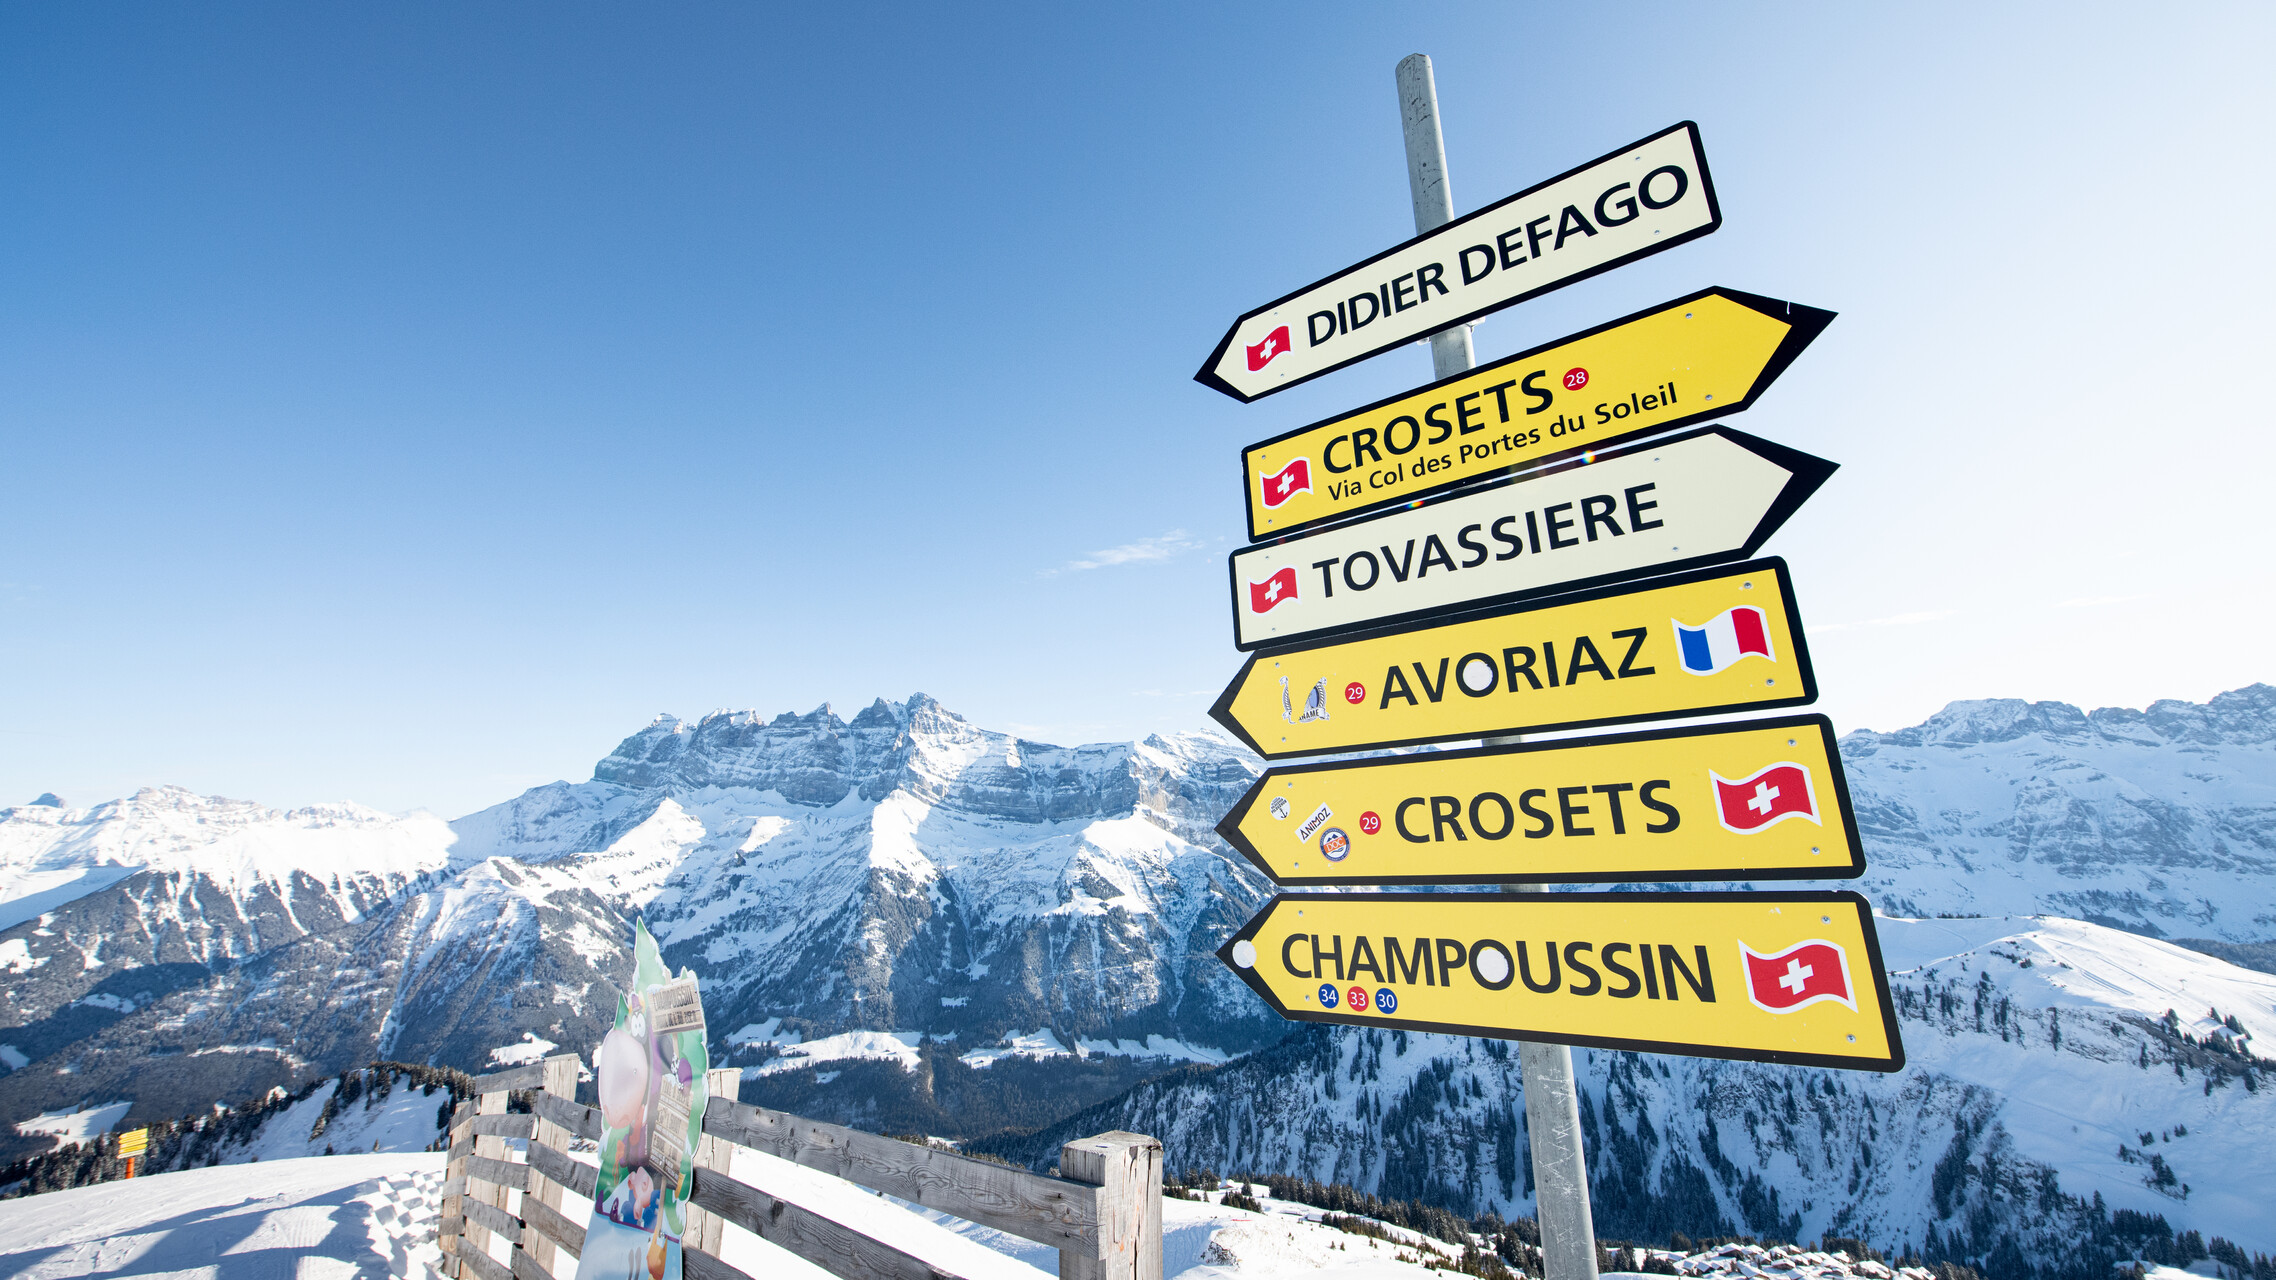 A cross-border area between Switzerland and France.